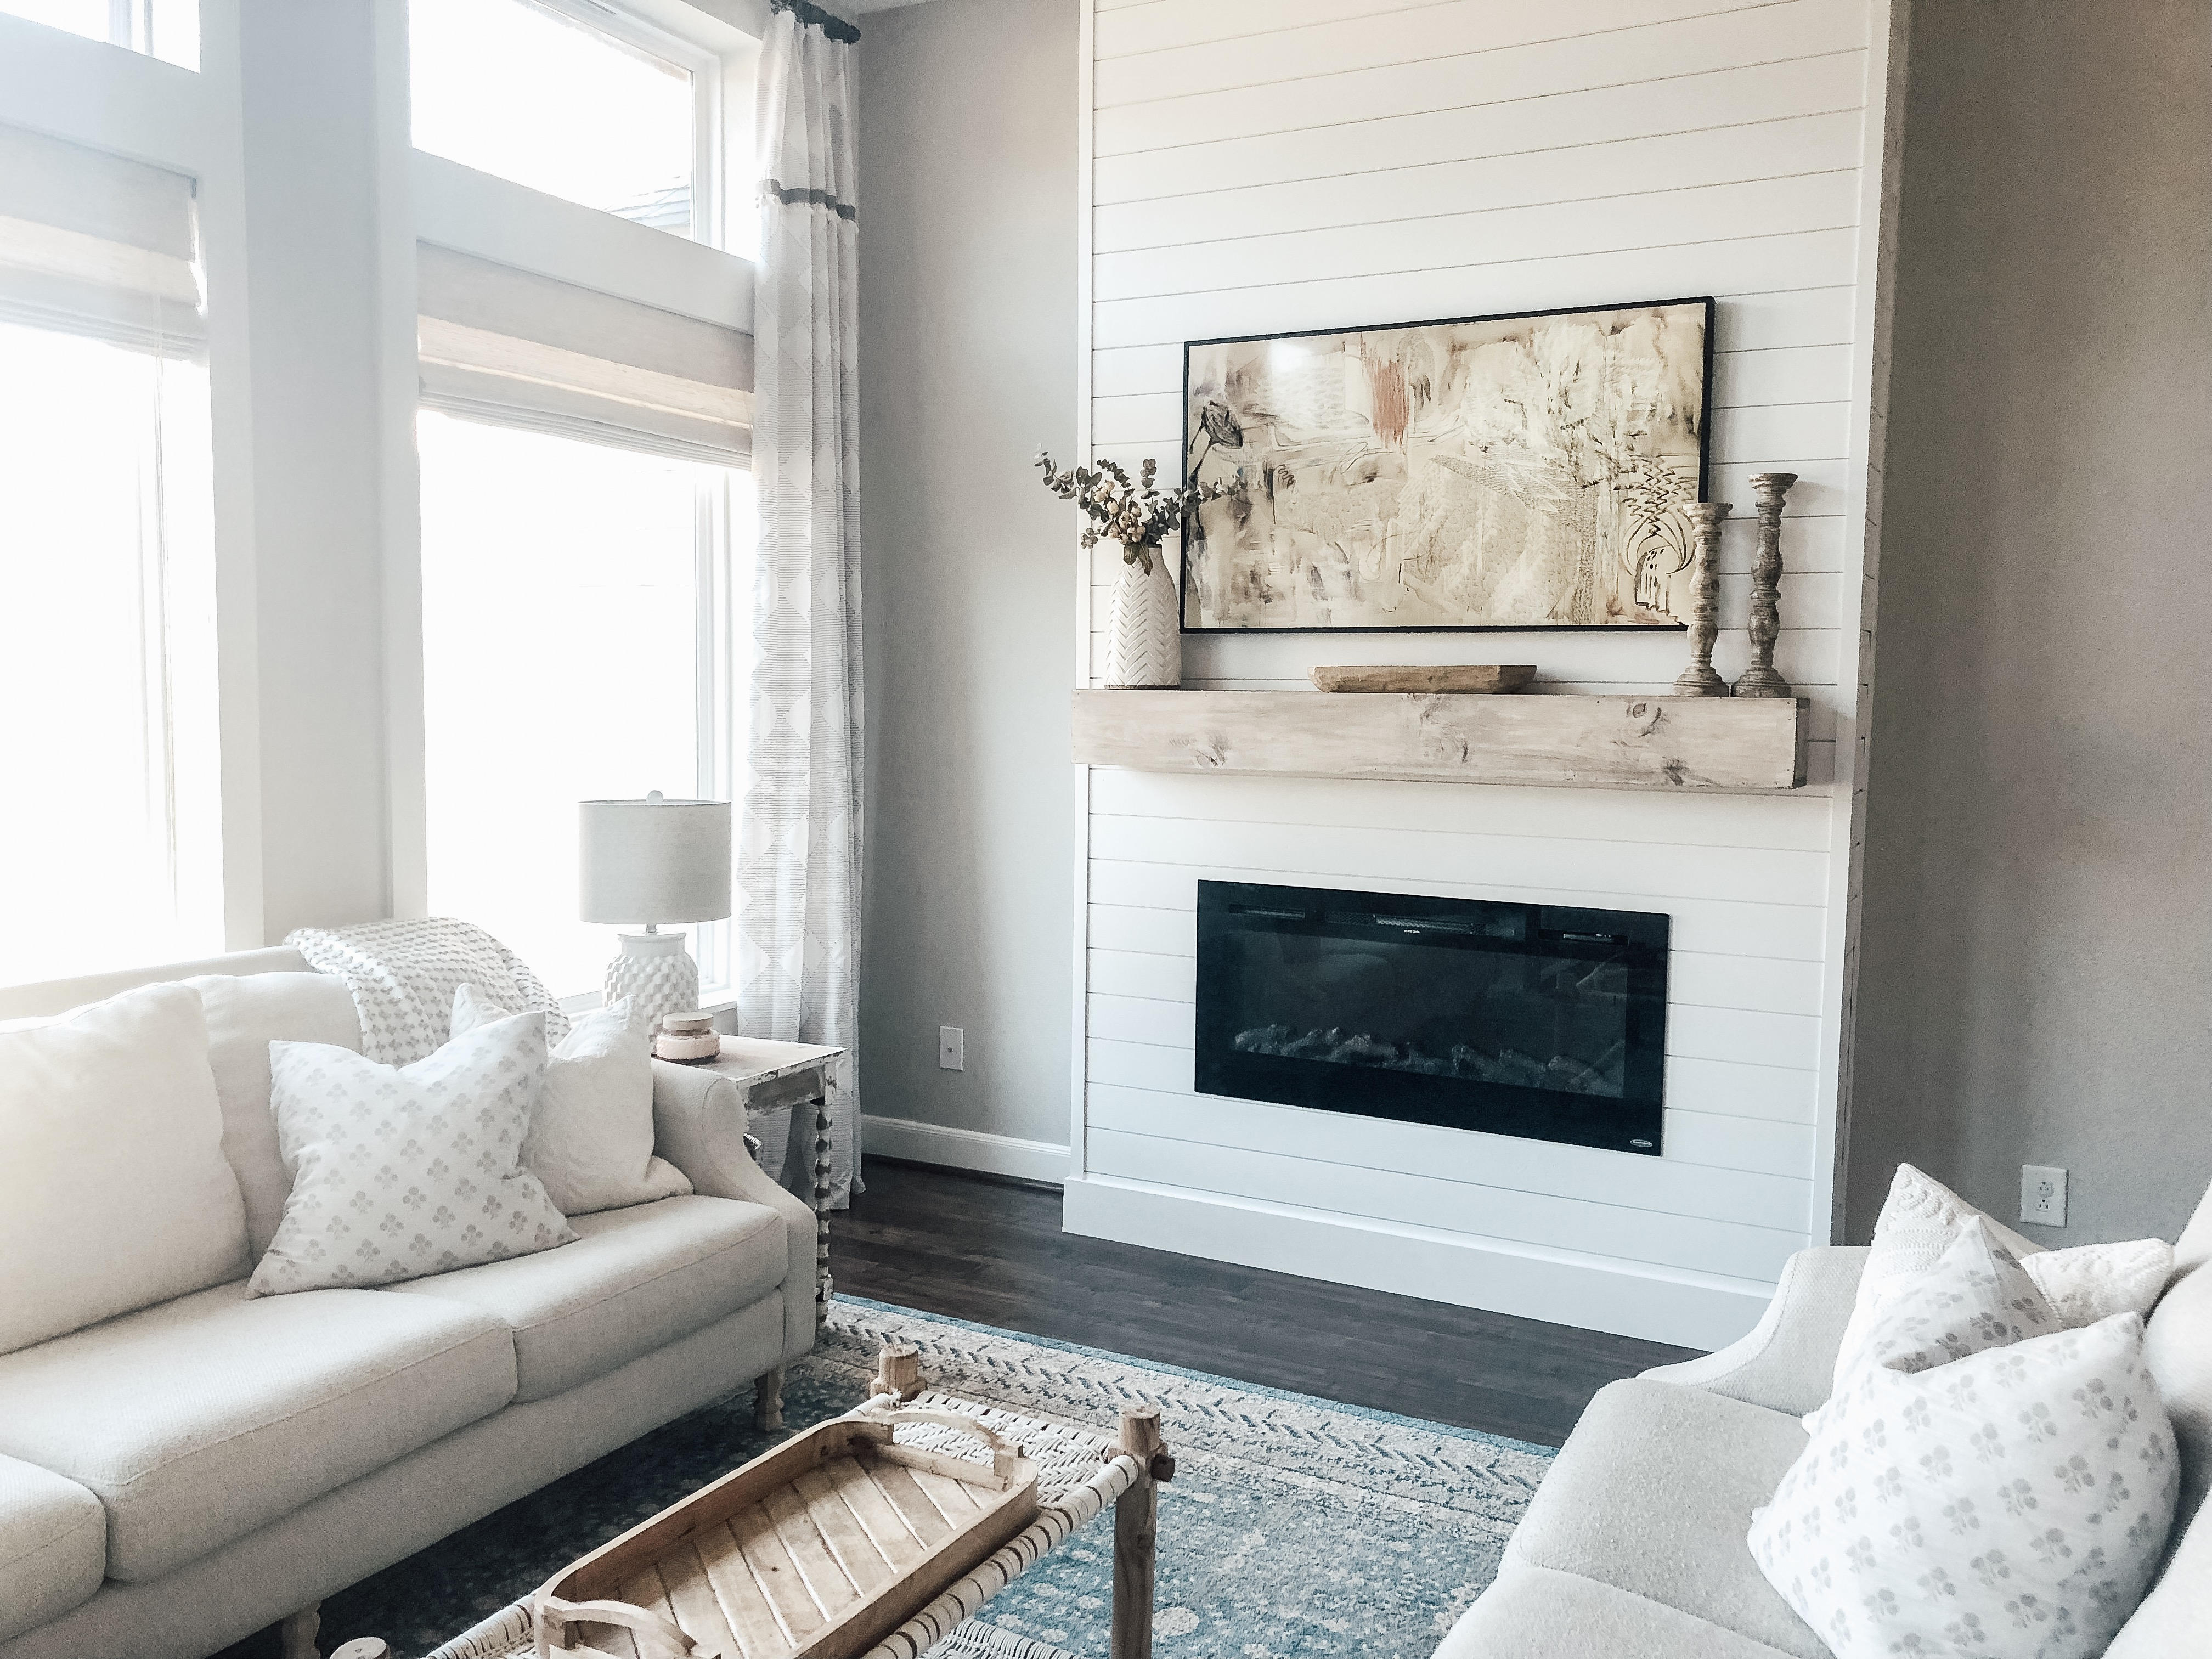 Installing a Fireplace + Our New Samsung Frame TV - The